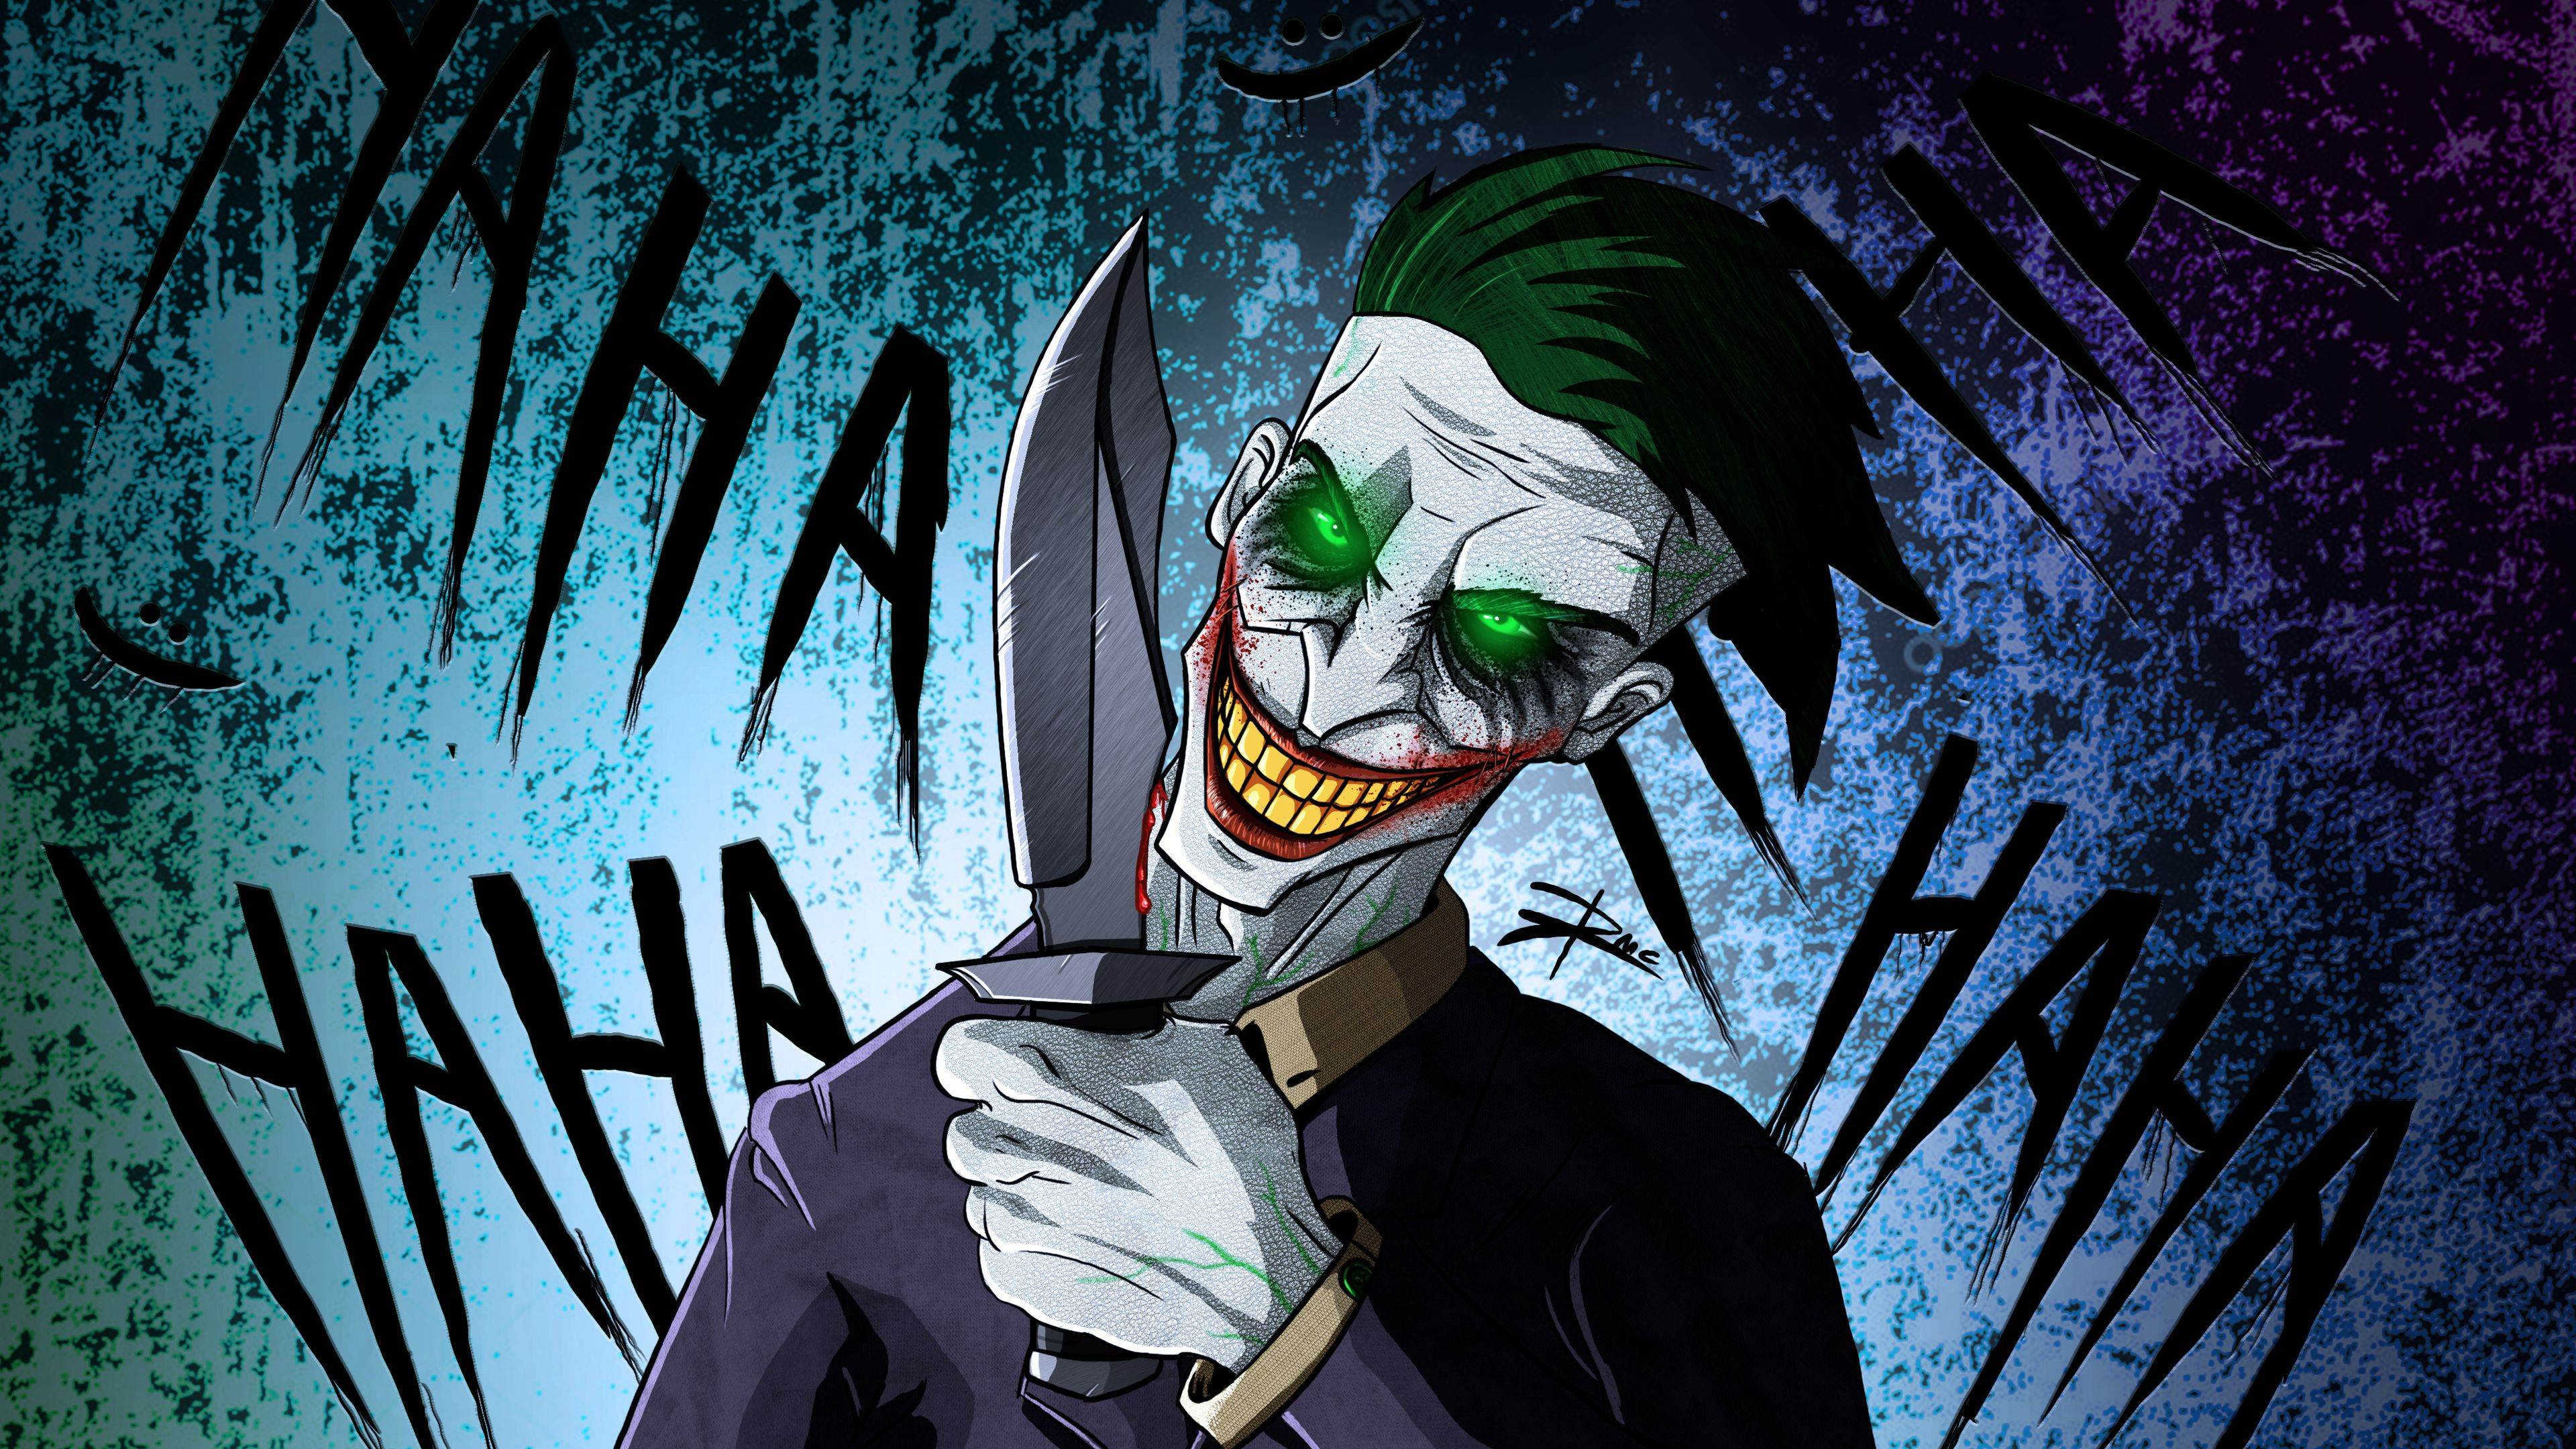 Crazy Joker Art 4k Supervillain Wallpapers Joker Wallpapers Hd Wallpapers Digital Art Wallpapers Deviantart Wallpa Joker Art Joker Artwork Joker Wallpapers